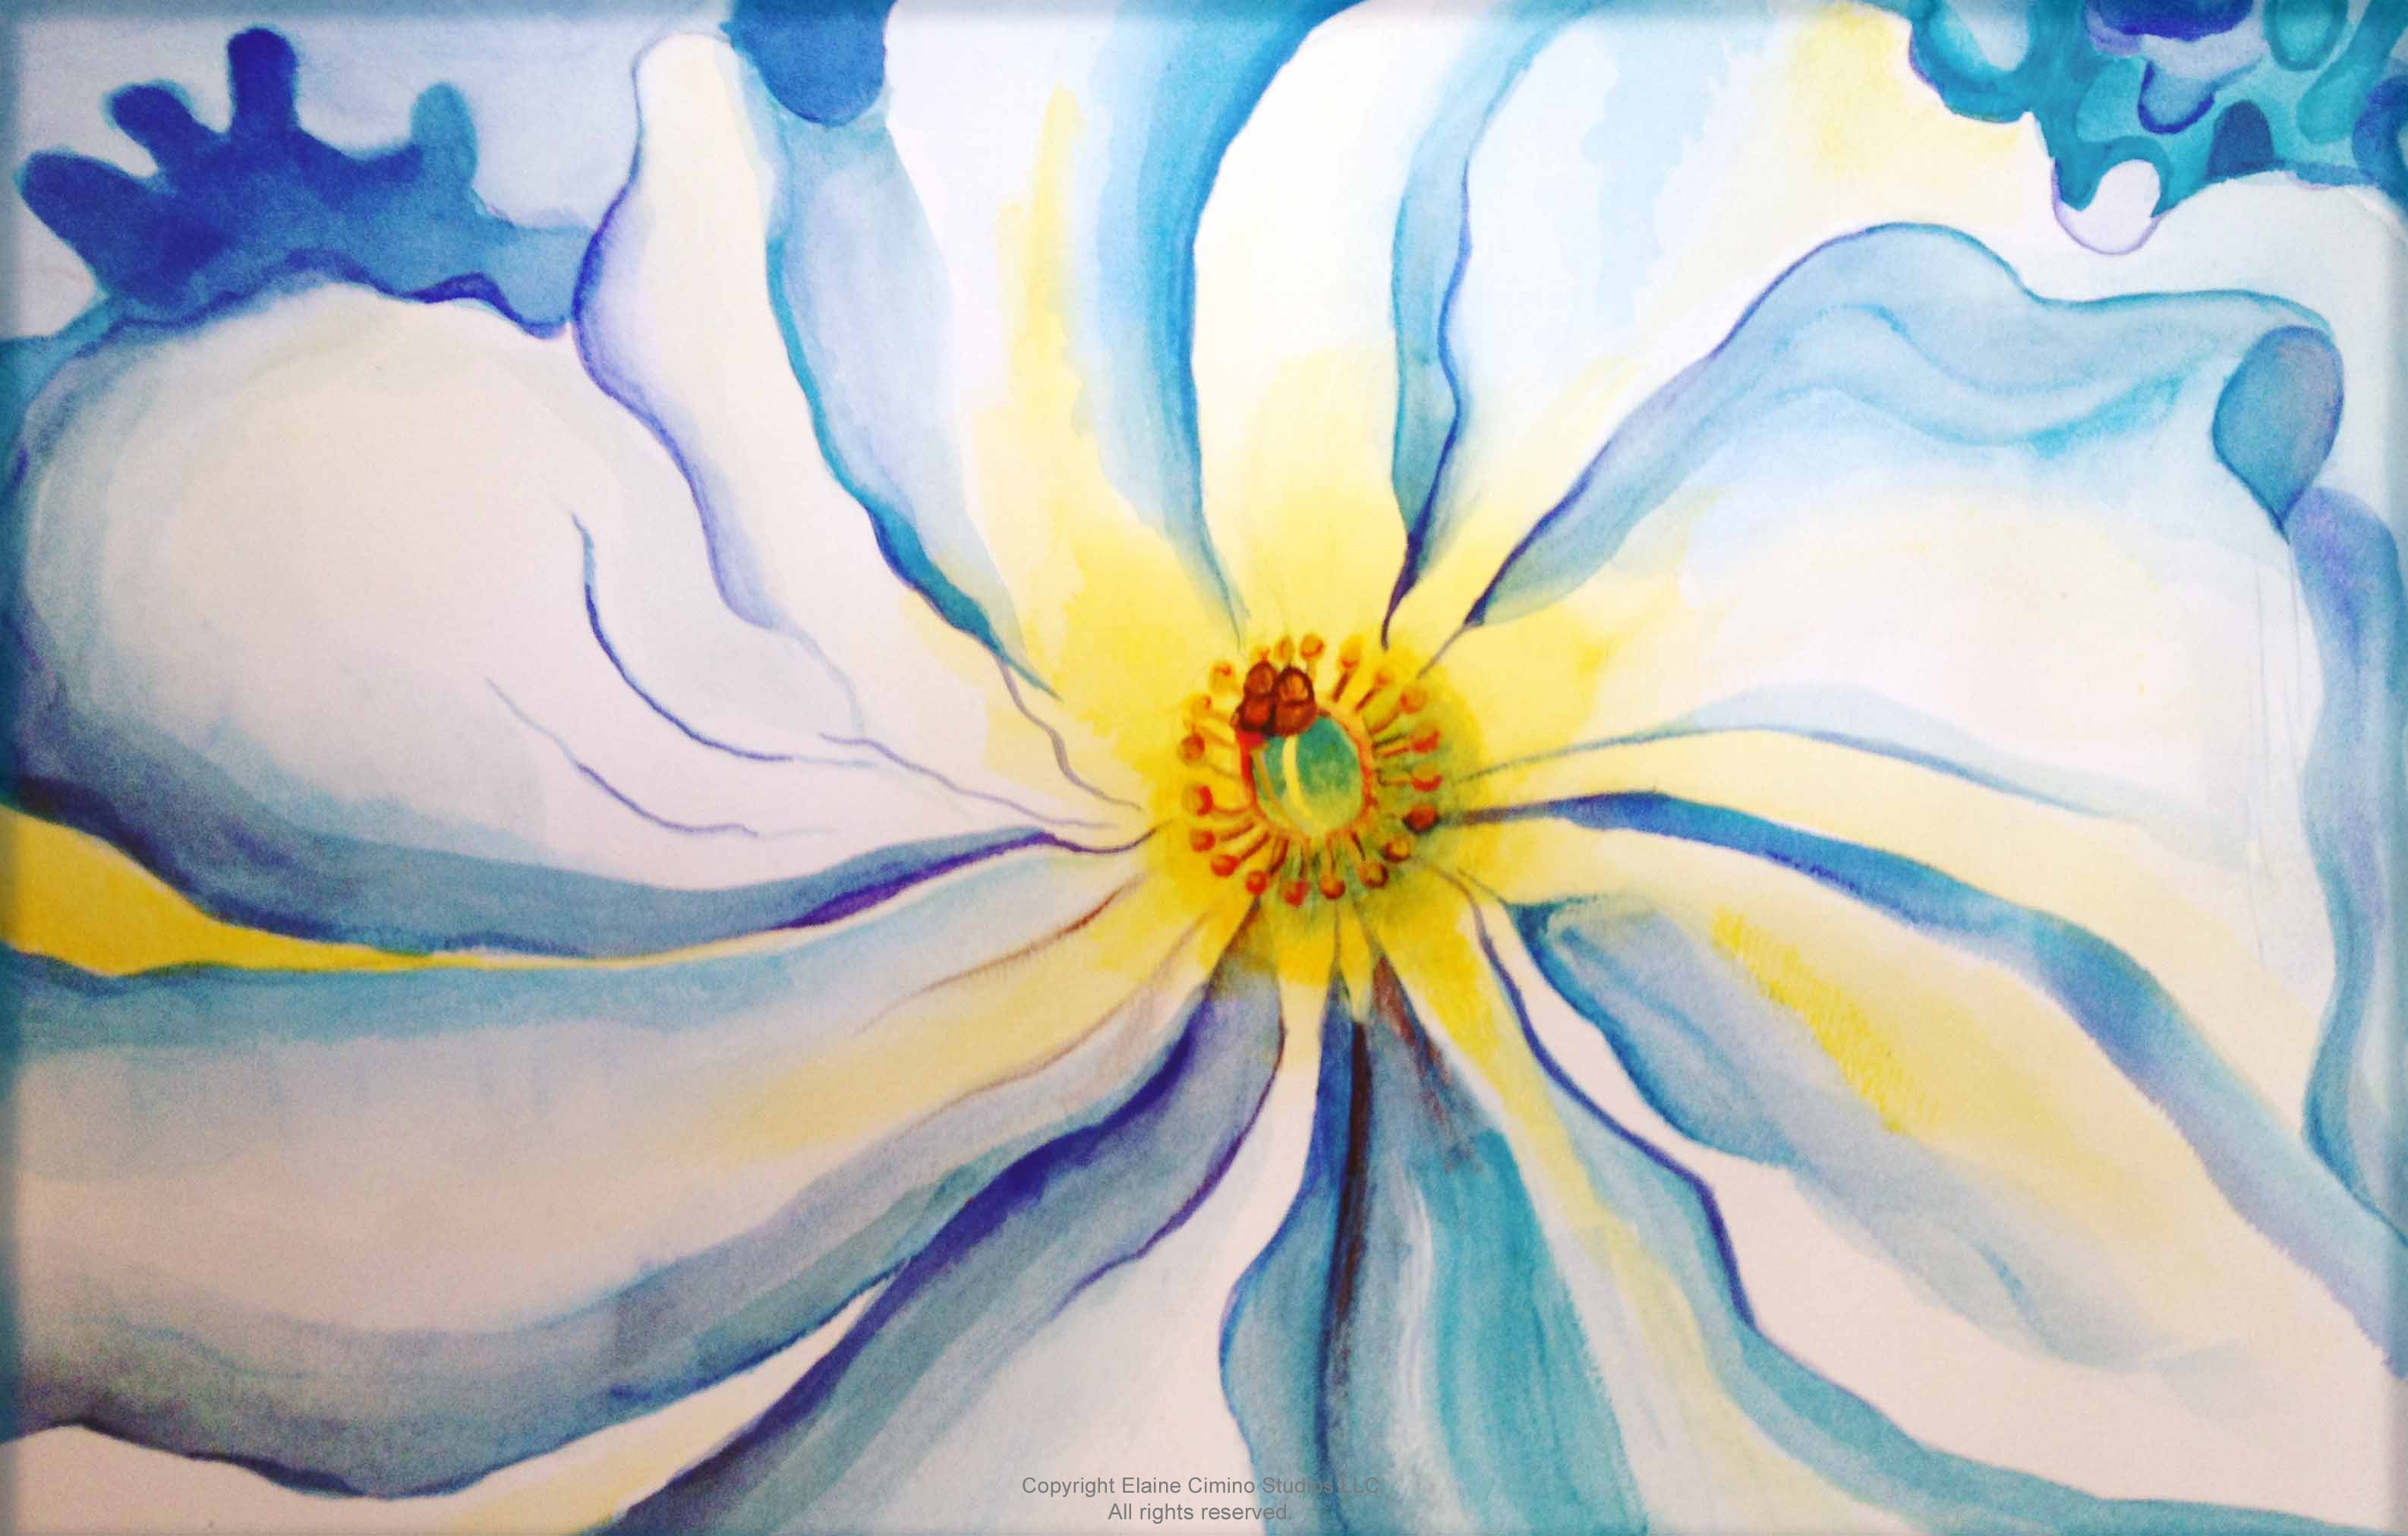 Flower of Georgia O'Keeffe